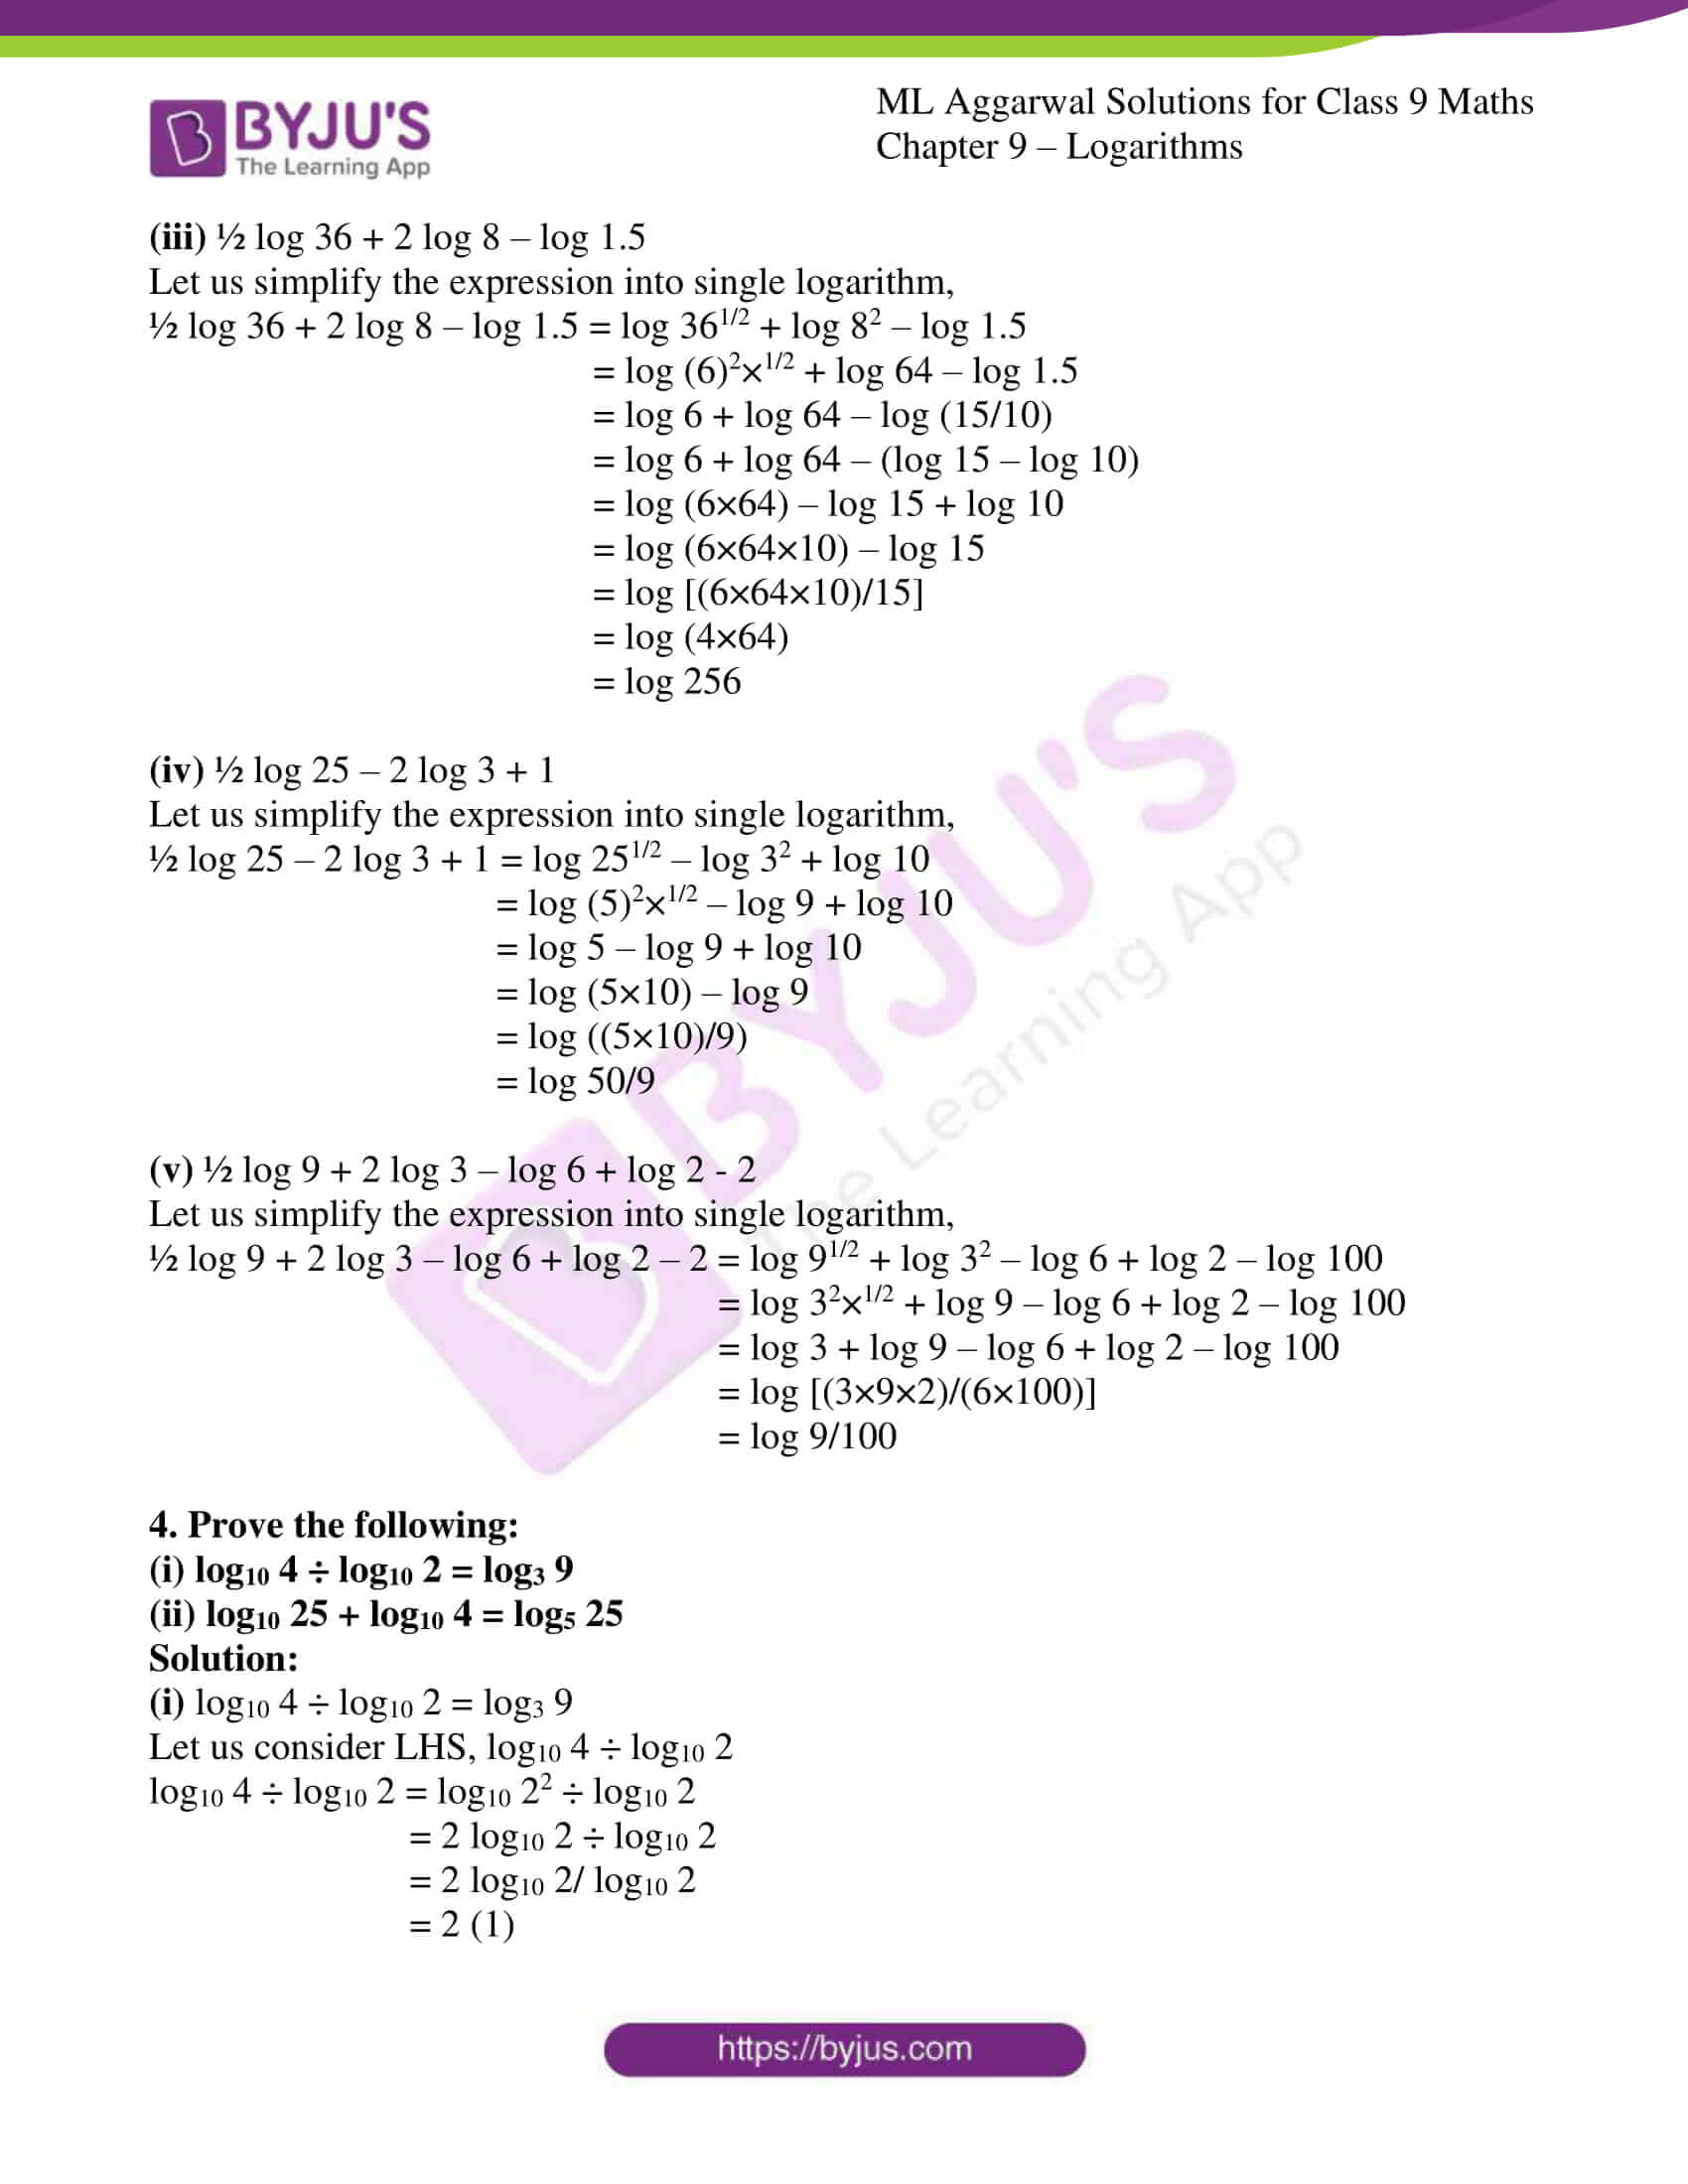 ml aggarwal solutions for class 9 maths chapter 9 17